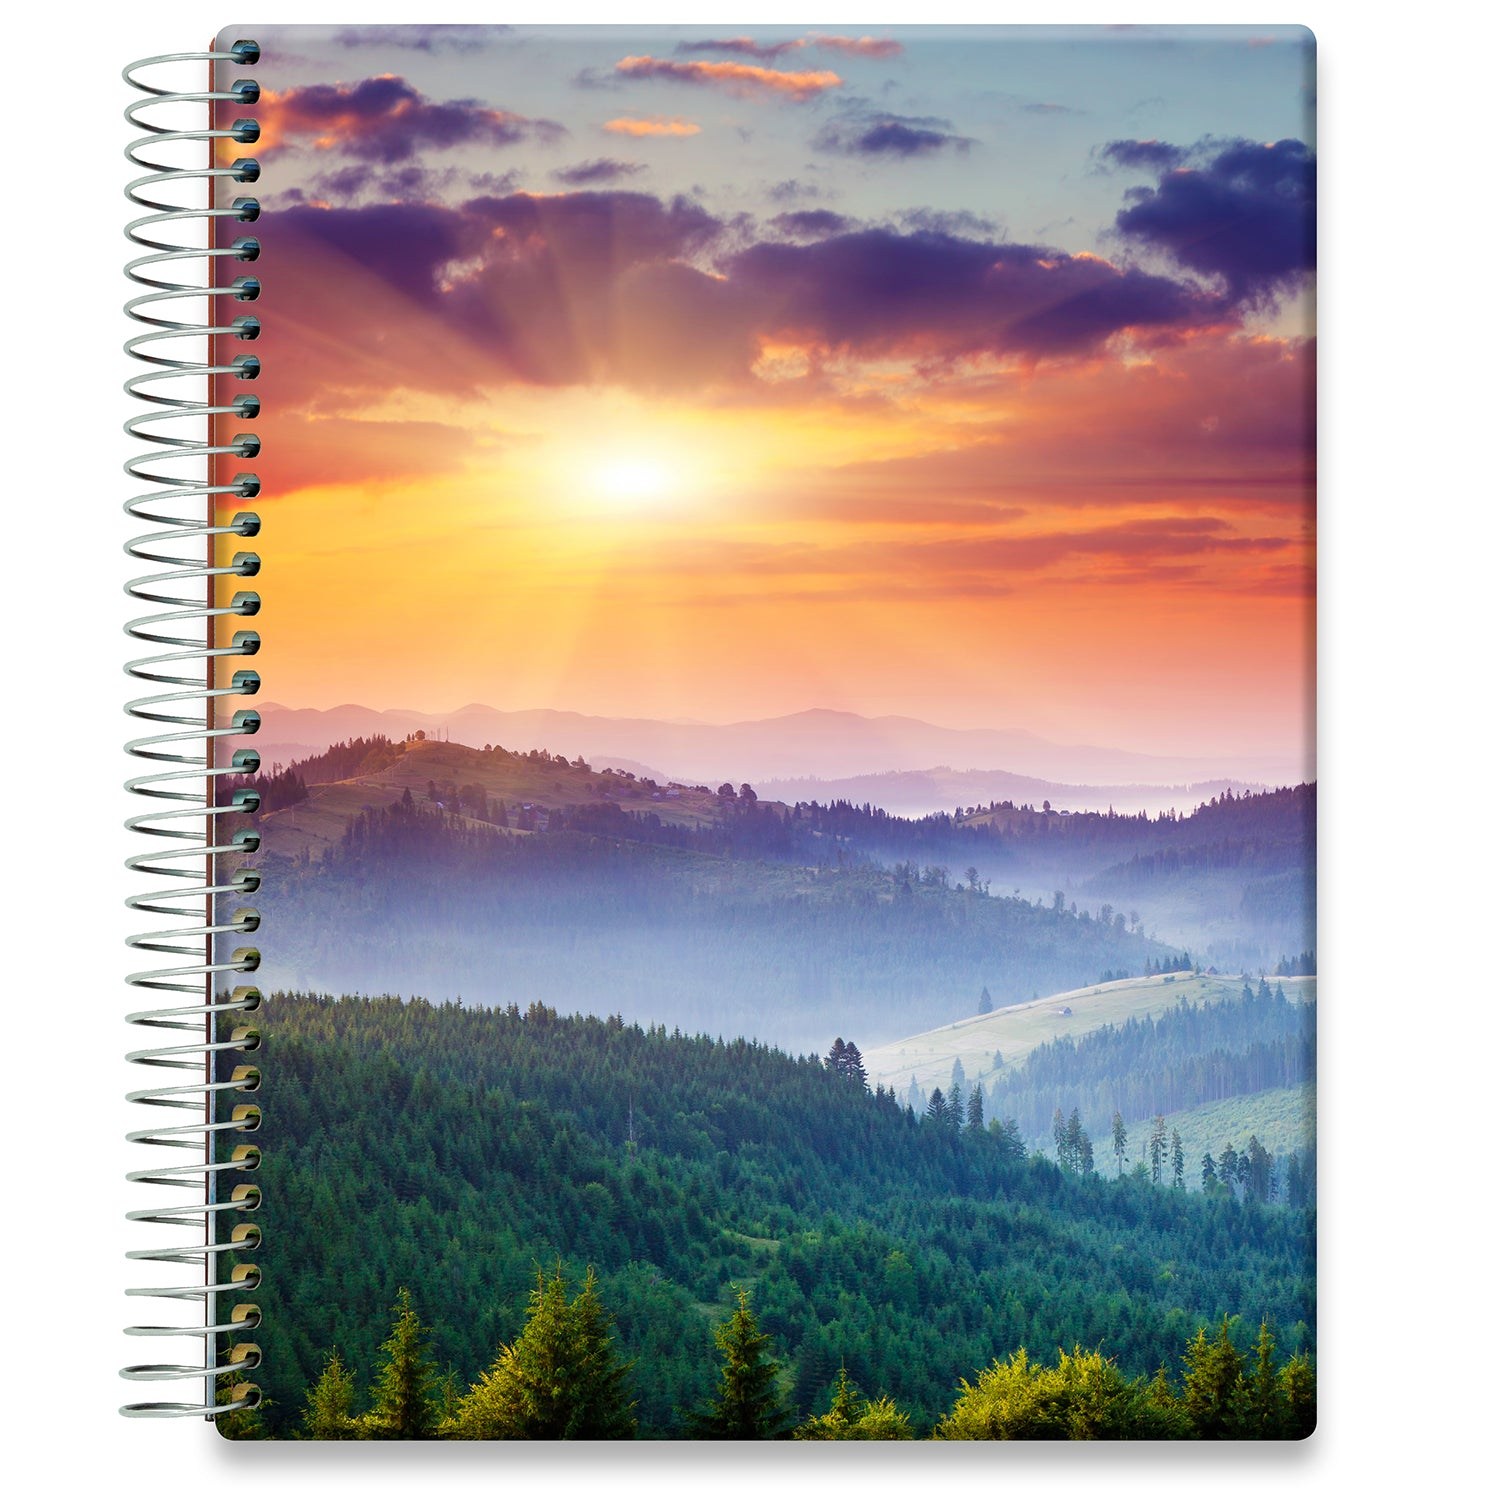 Planner 2021-2022 • April 2021 to June 2022 Academic Year • 8.5x11 Hardcover • Majestic Sunset